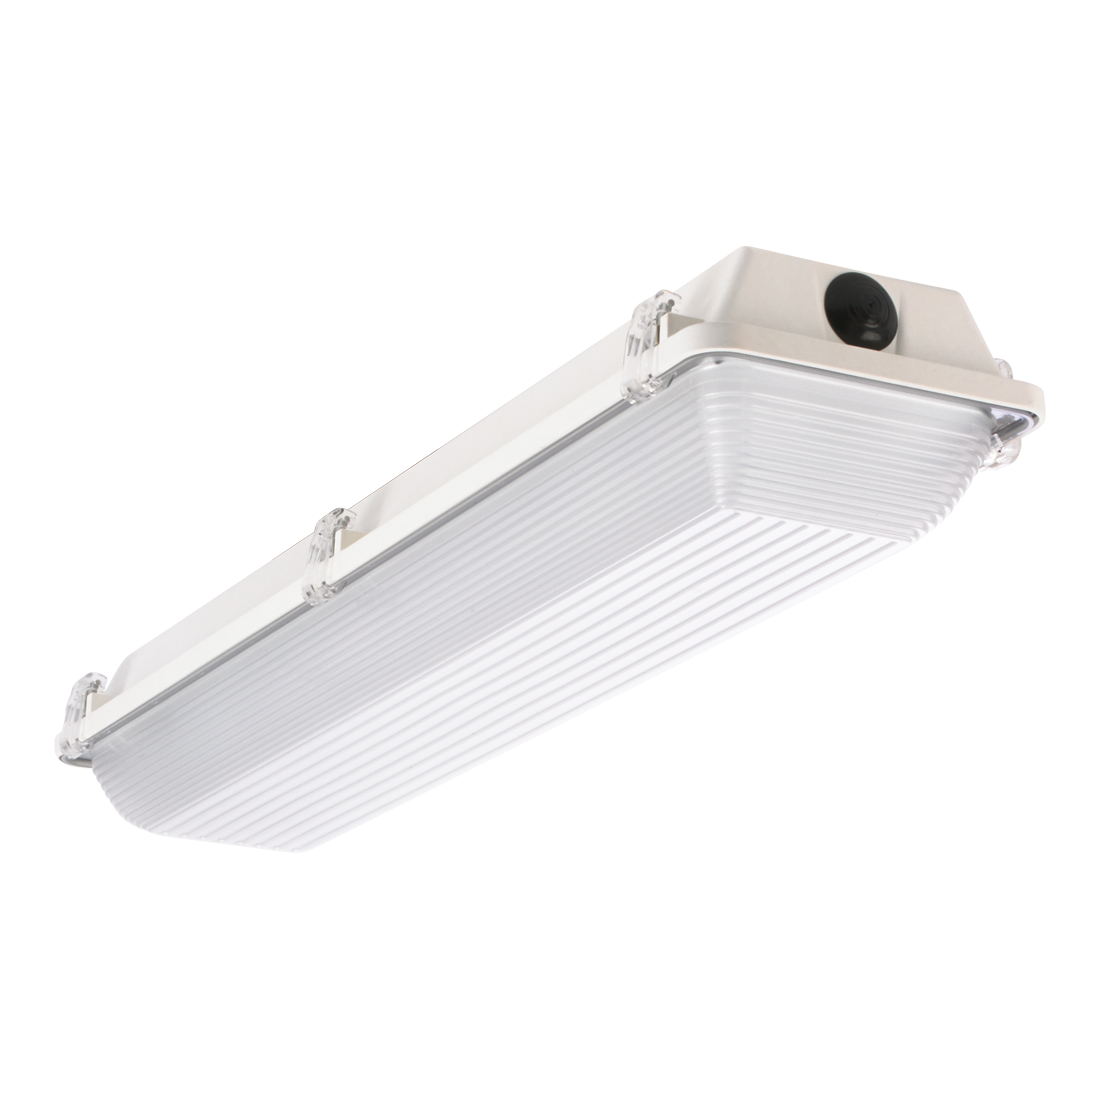 Atlas Lighting ILW25LED2D ATL ILW25LED2D